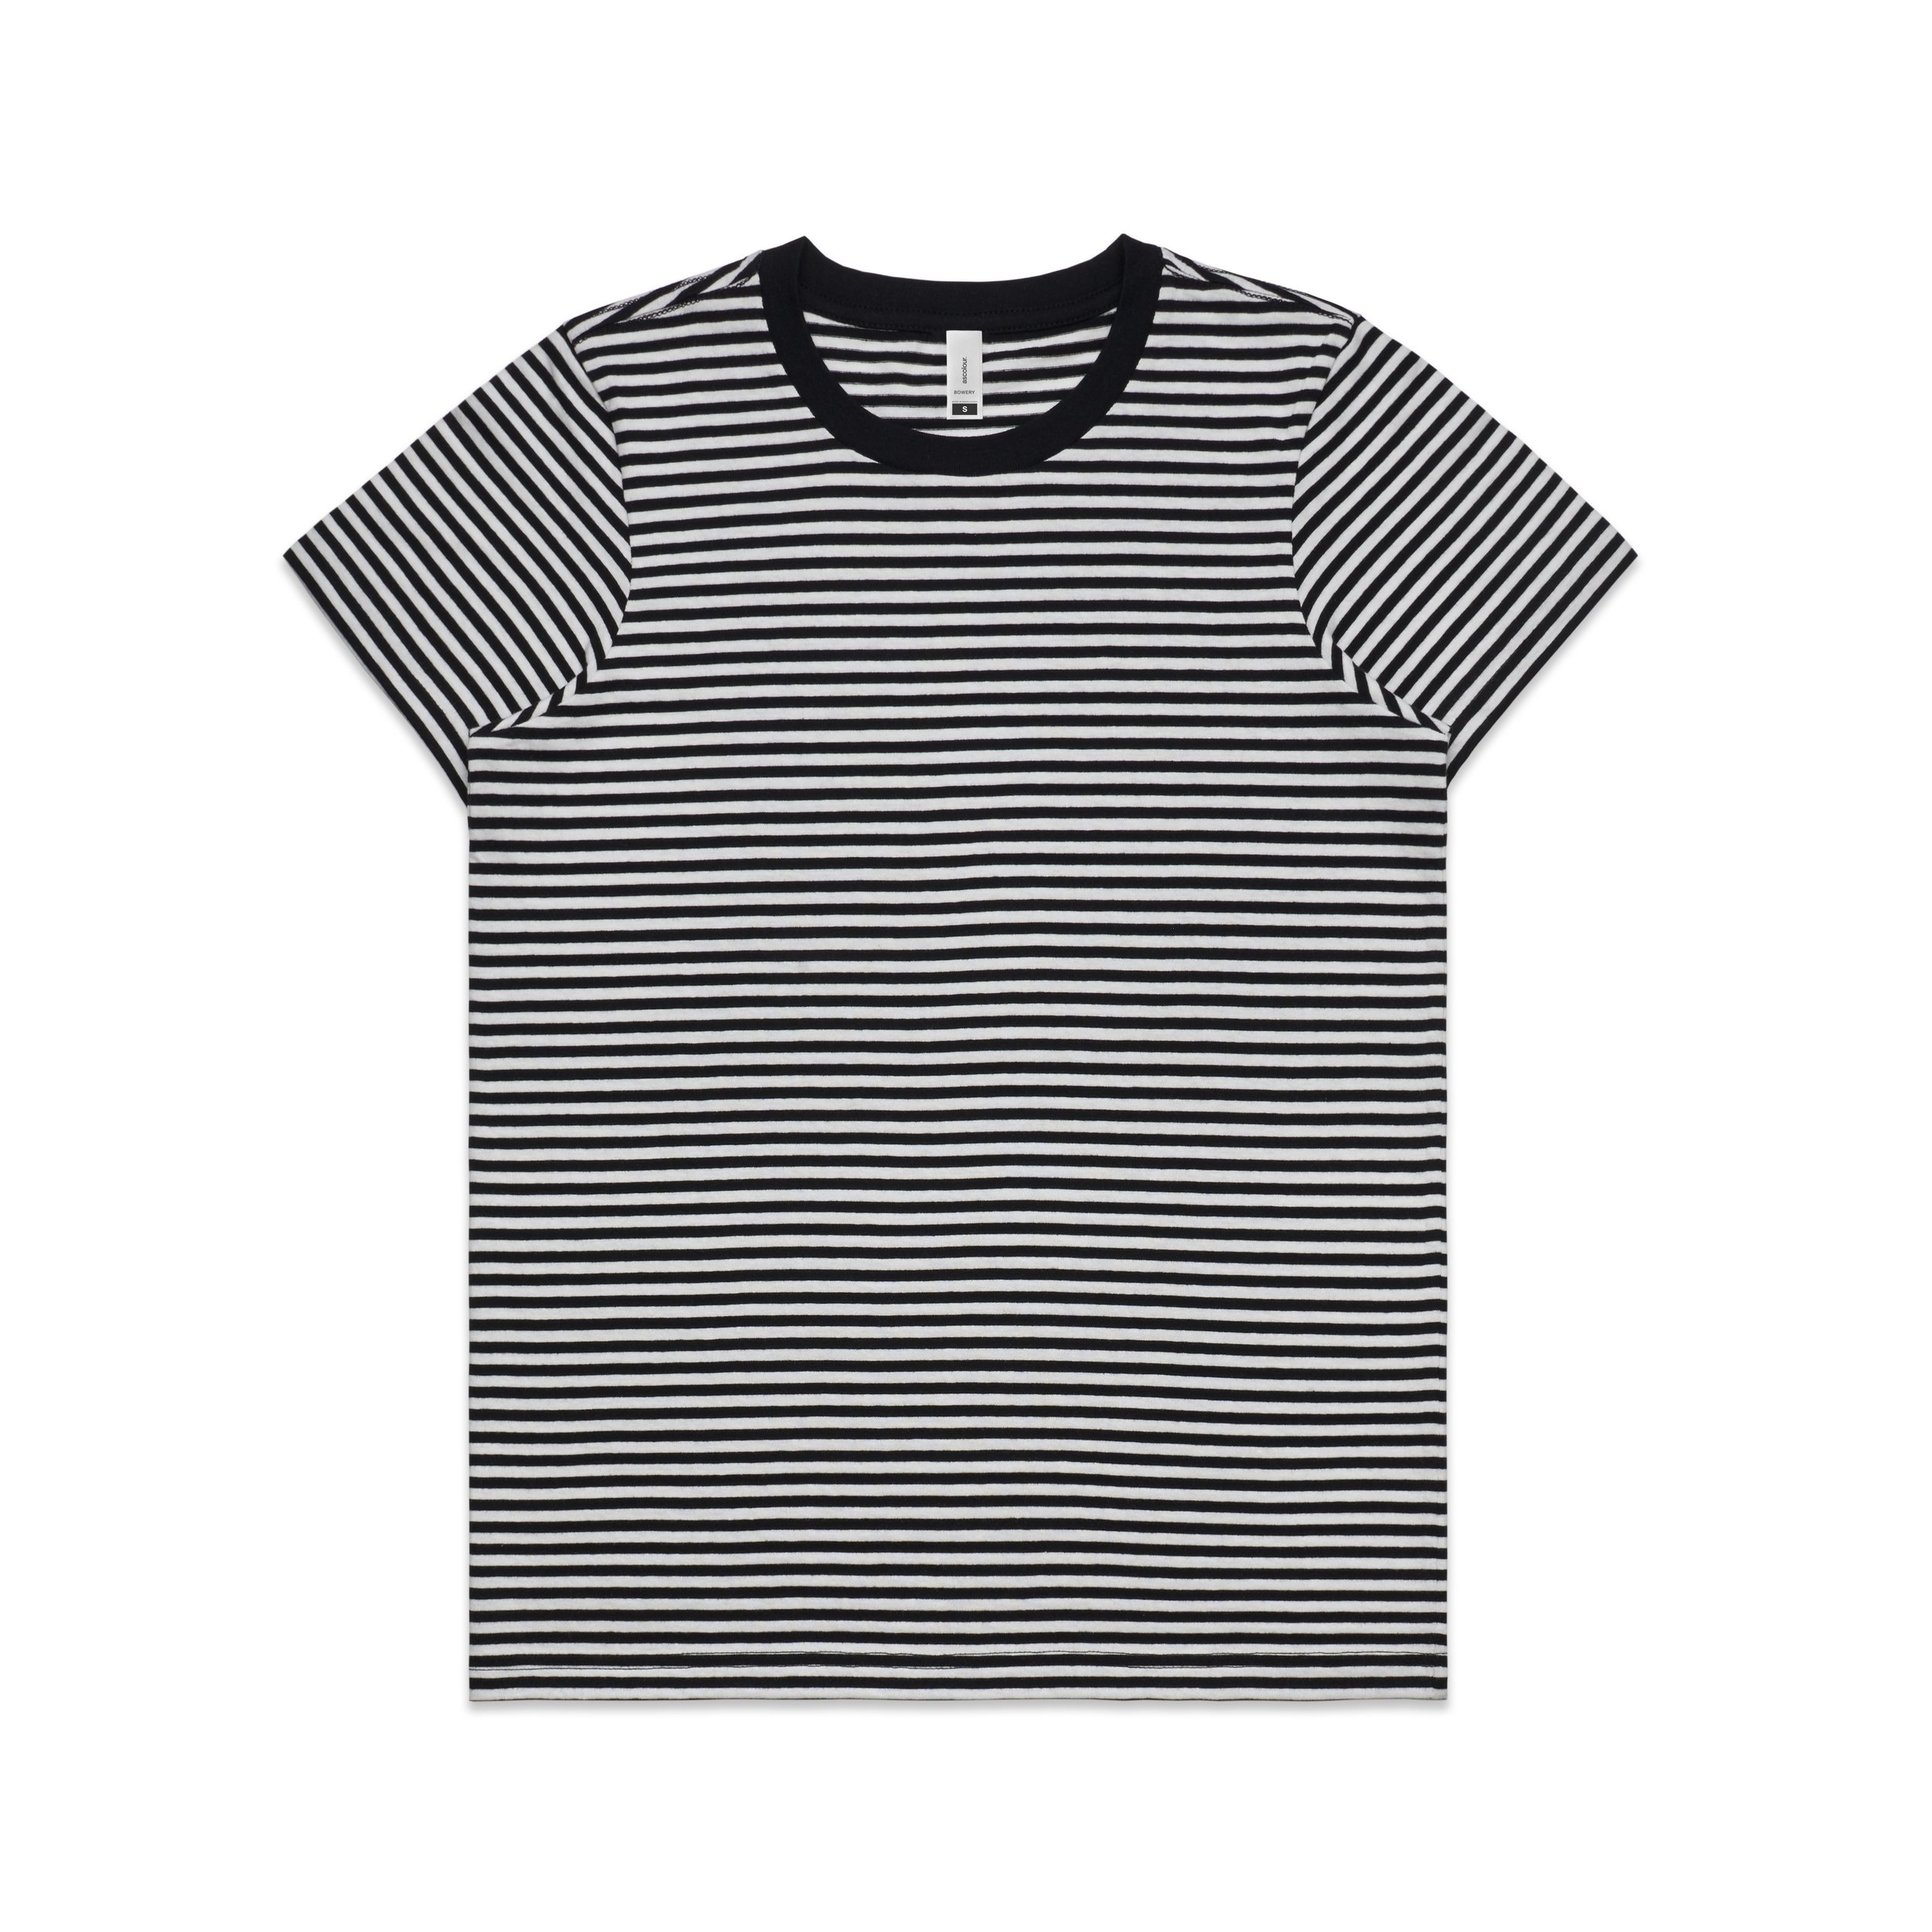 WO's Bowery Stripe Tee 4060 - Regular Fit | Crew Neck | Mid-Weight | 160 gsm | 100% Combed Cotton | Preshrunk | 2 Colours